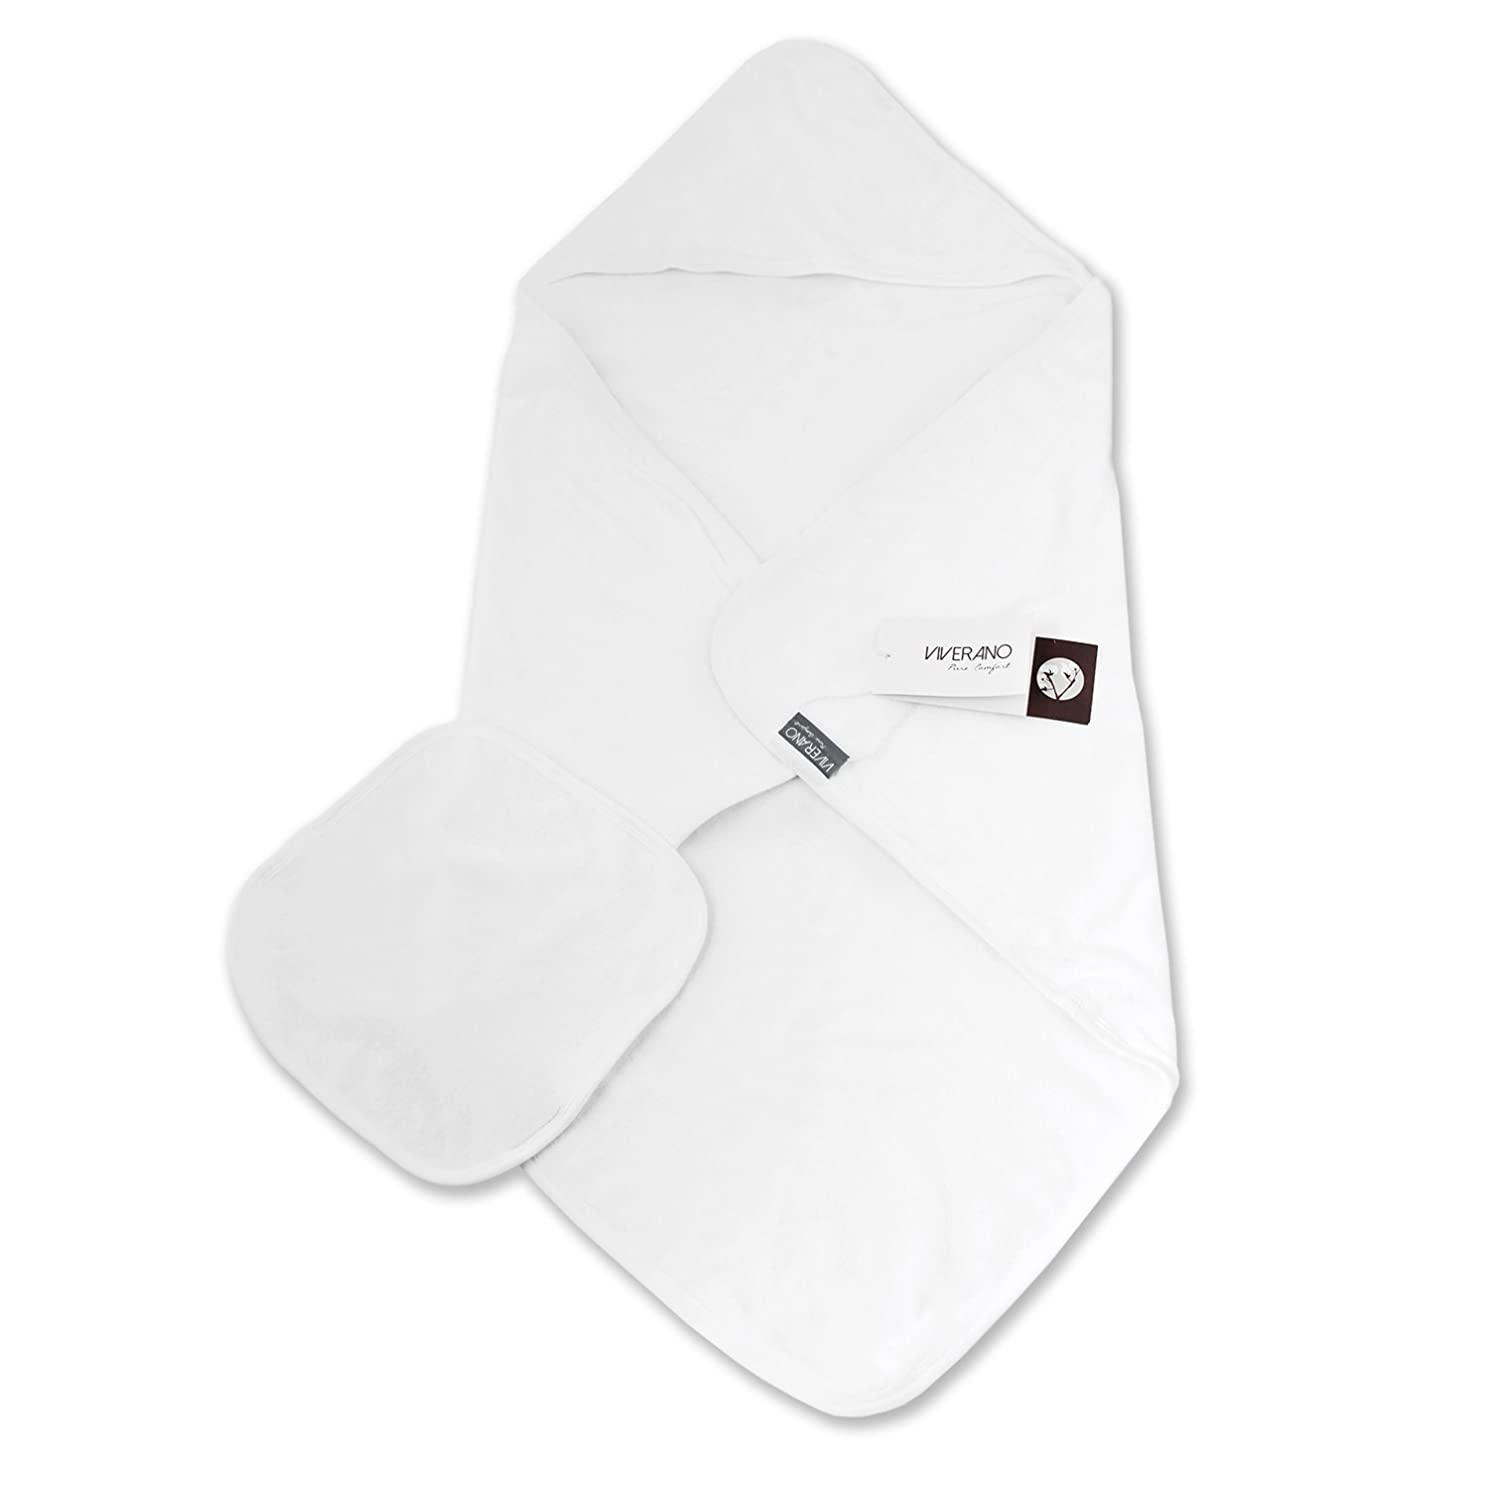 Viverano Viverano Organic Cotton Baby Hooded Towel Cotton and Washcloth Hooded Set - Pure White, 2 Ply by Viverano B00IZPB96Q, ジーンズ専門店Basis:e0ff7c84 --- ijpba.info